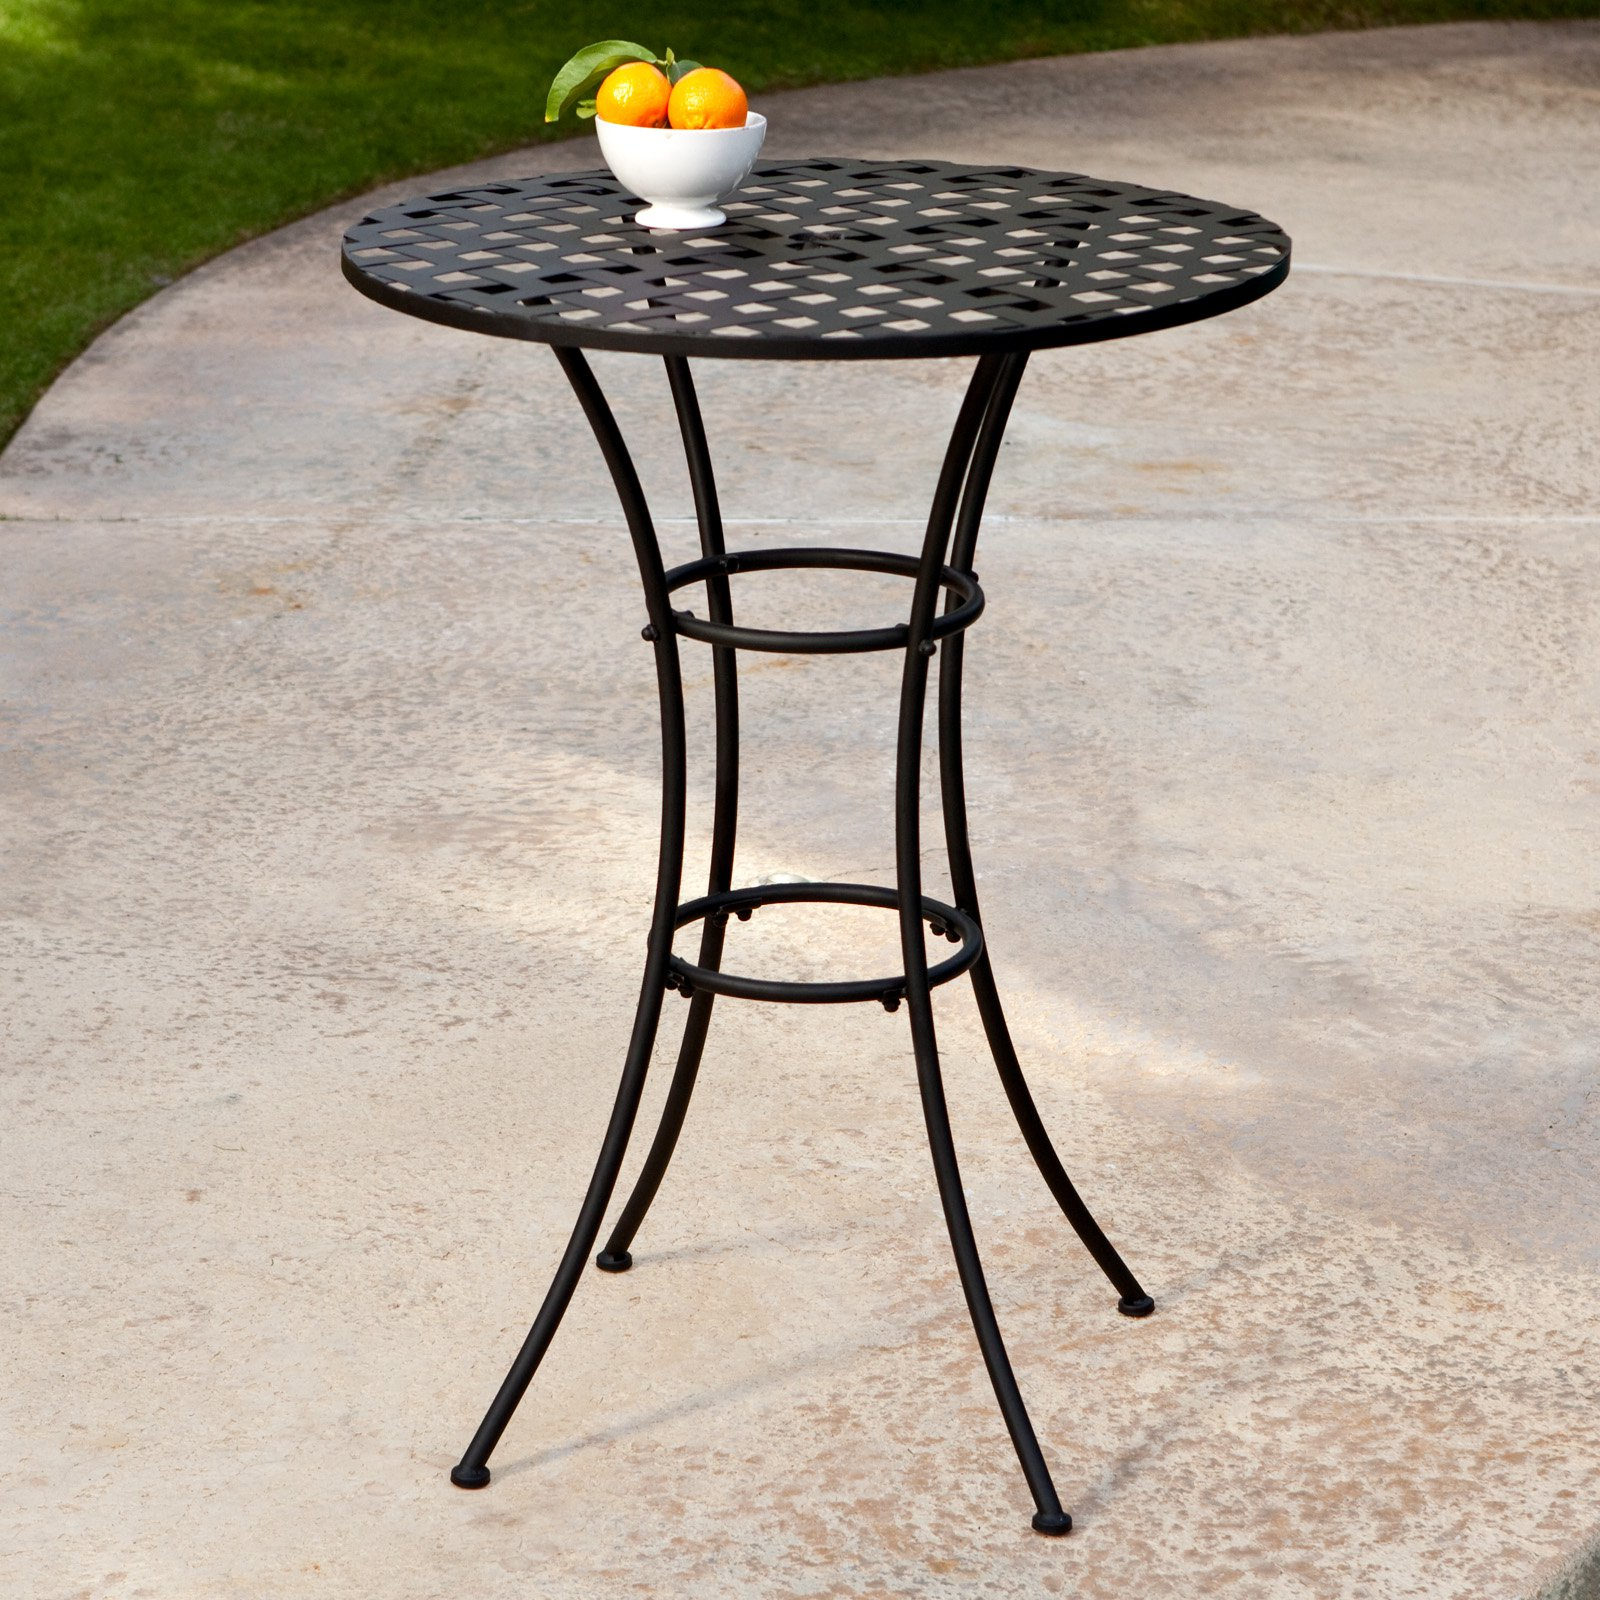 Belham Living Capri Wrought Iron Bar Height Bistro Table By Woodard